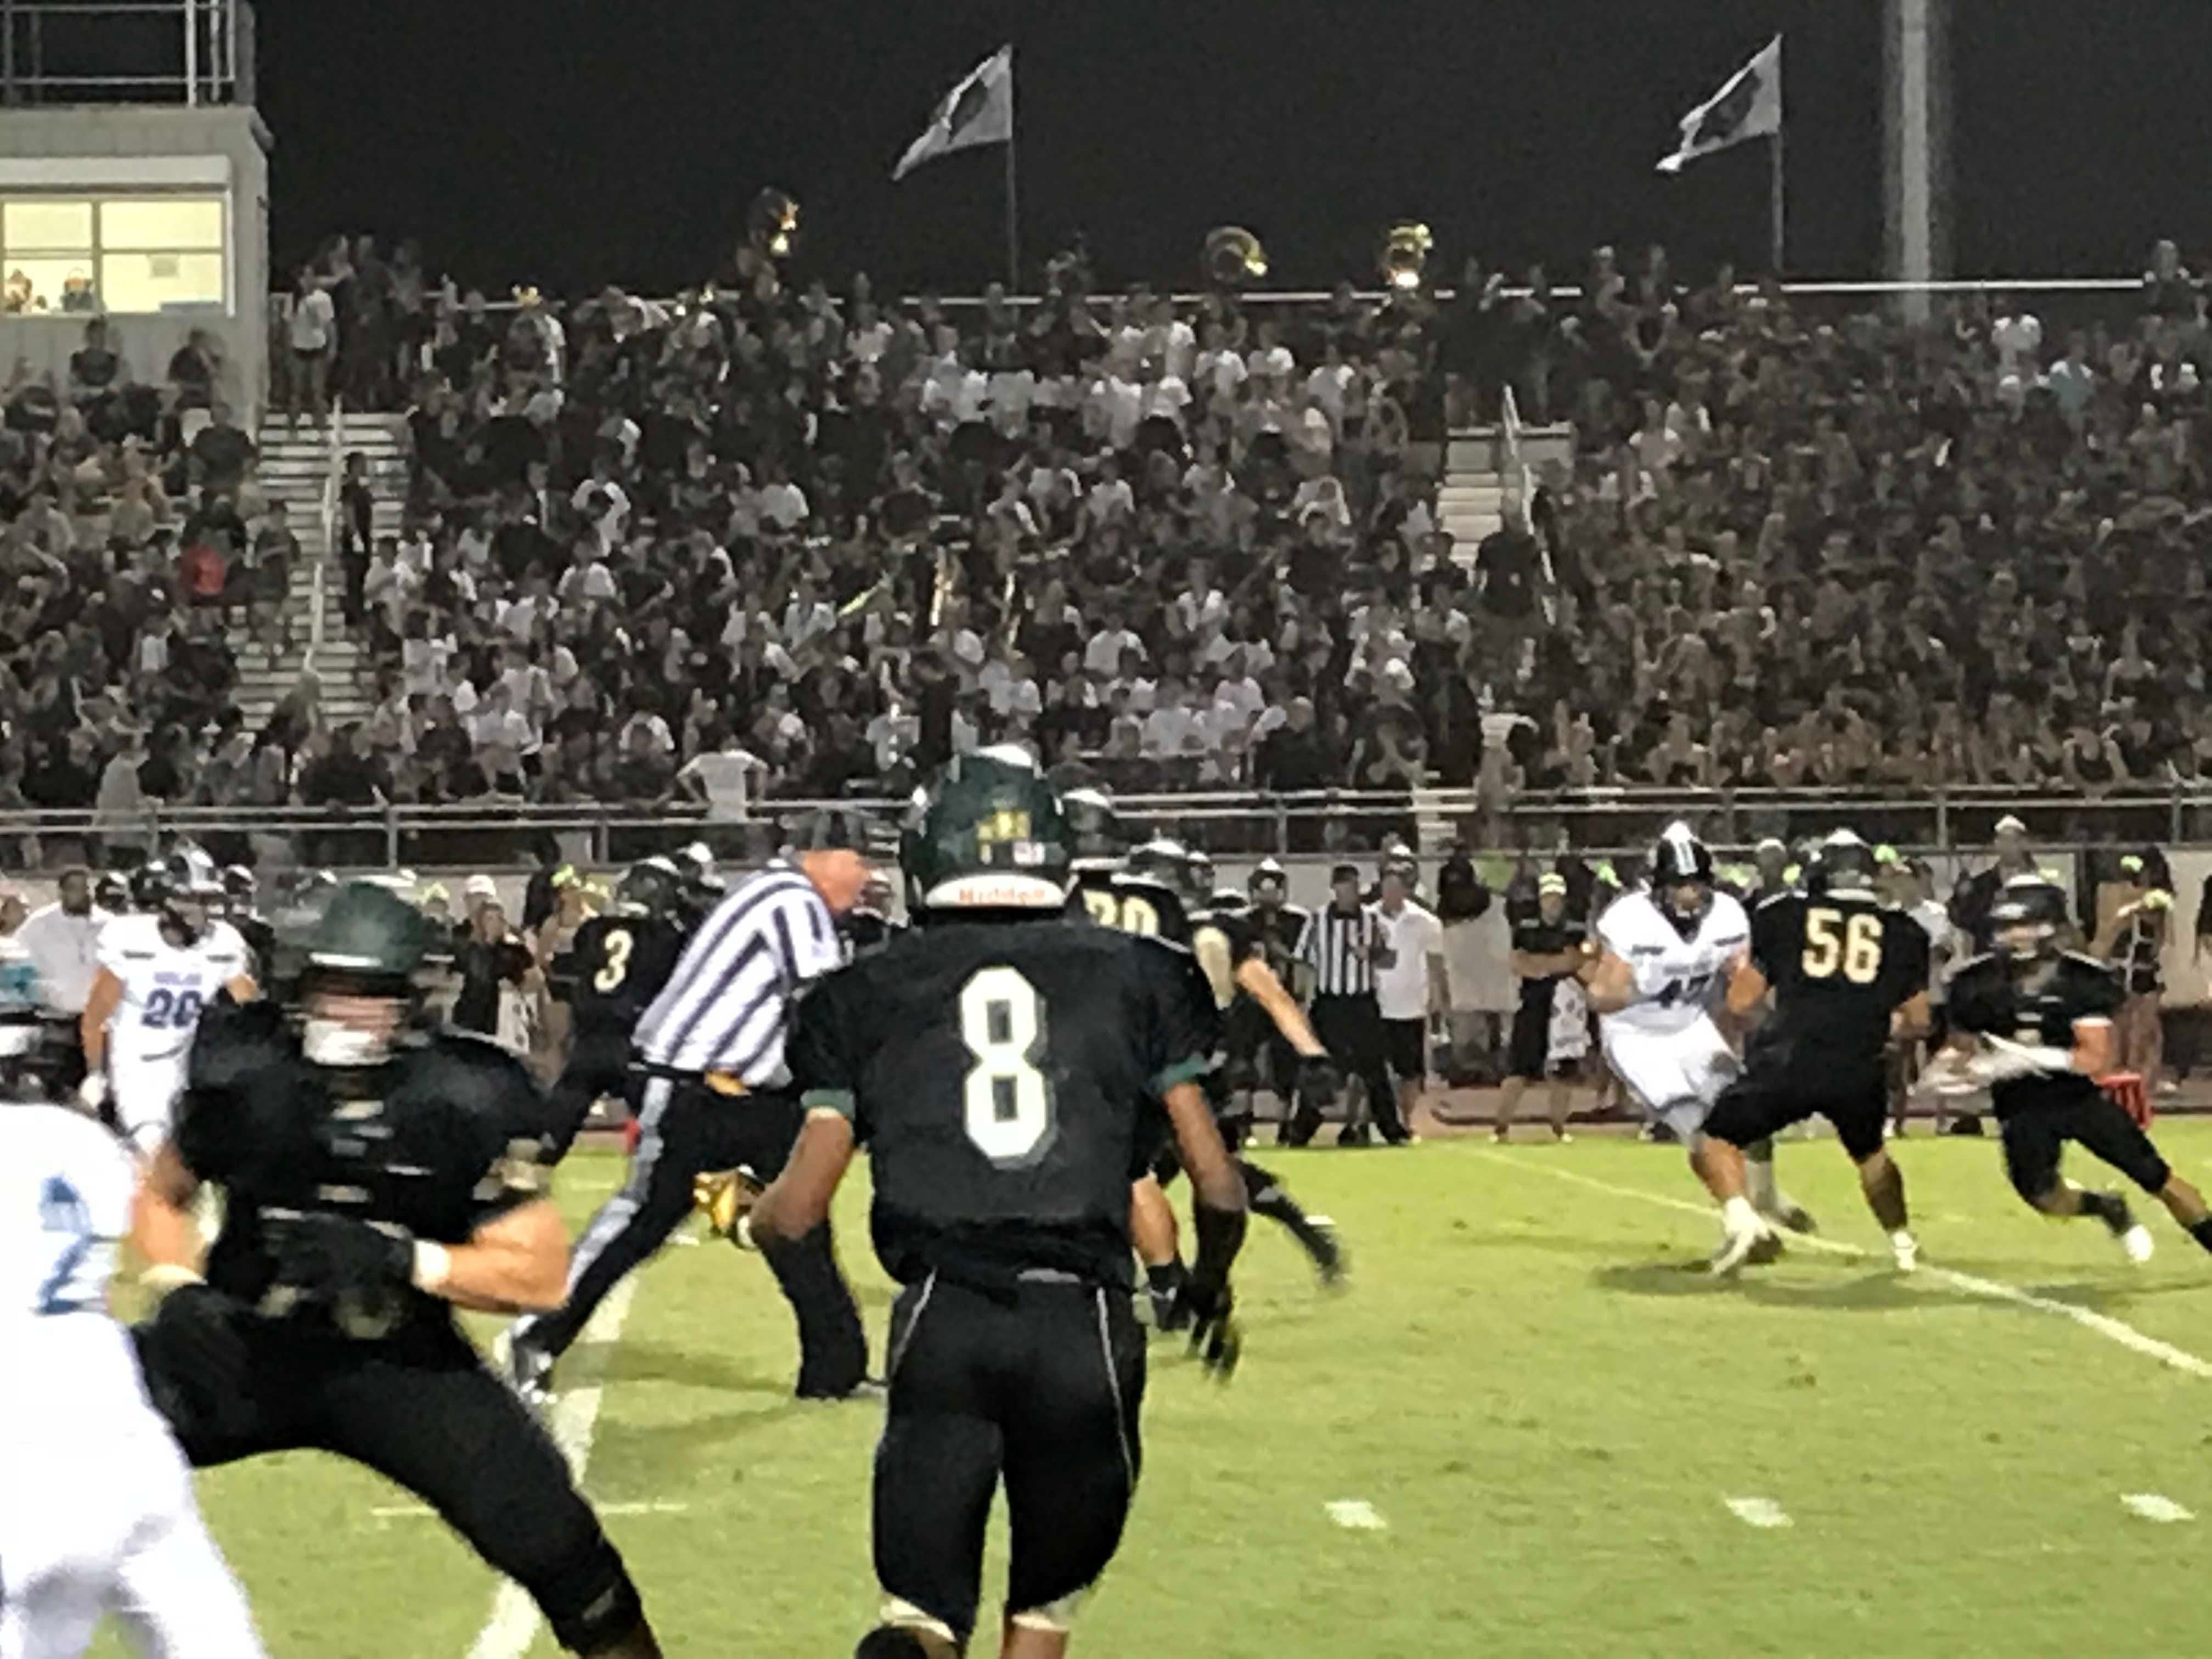 Pics from Highland vs Basha on Sept. 14, 1998